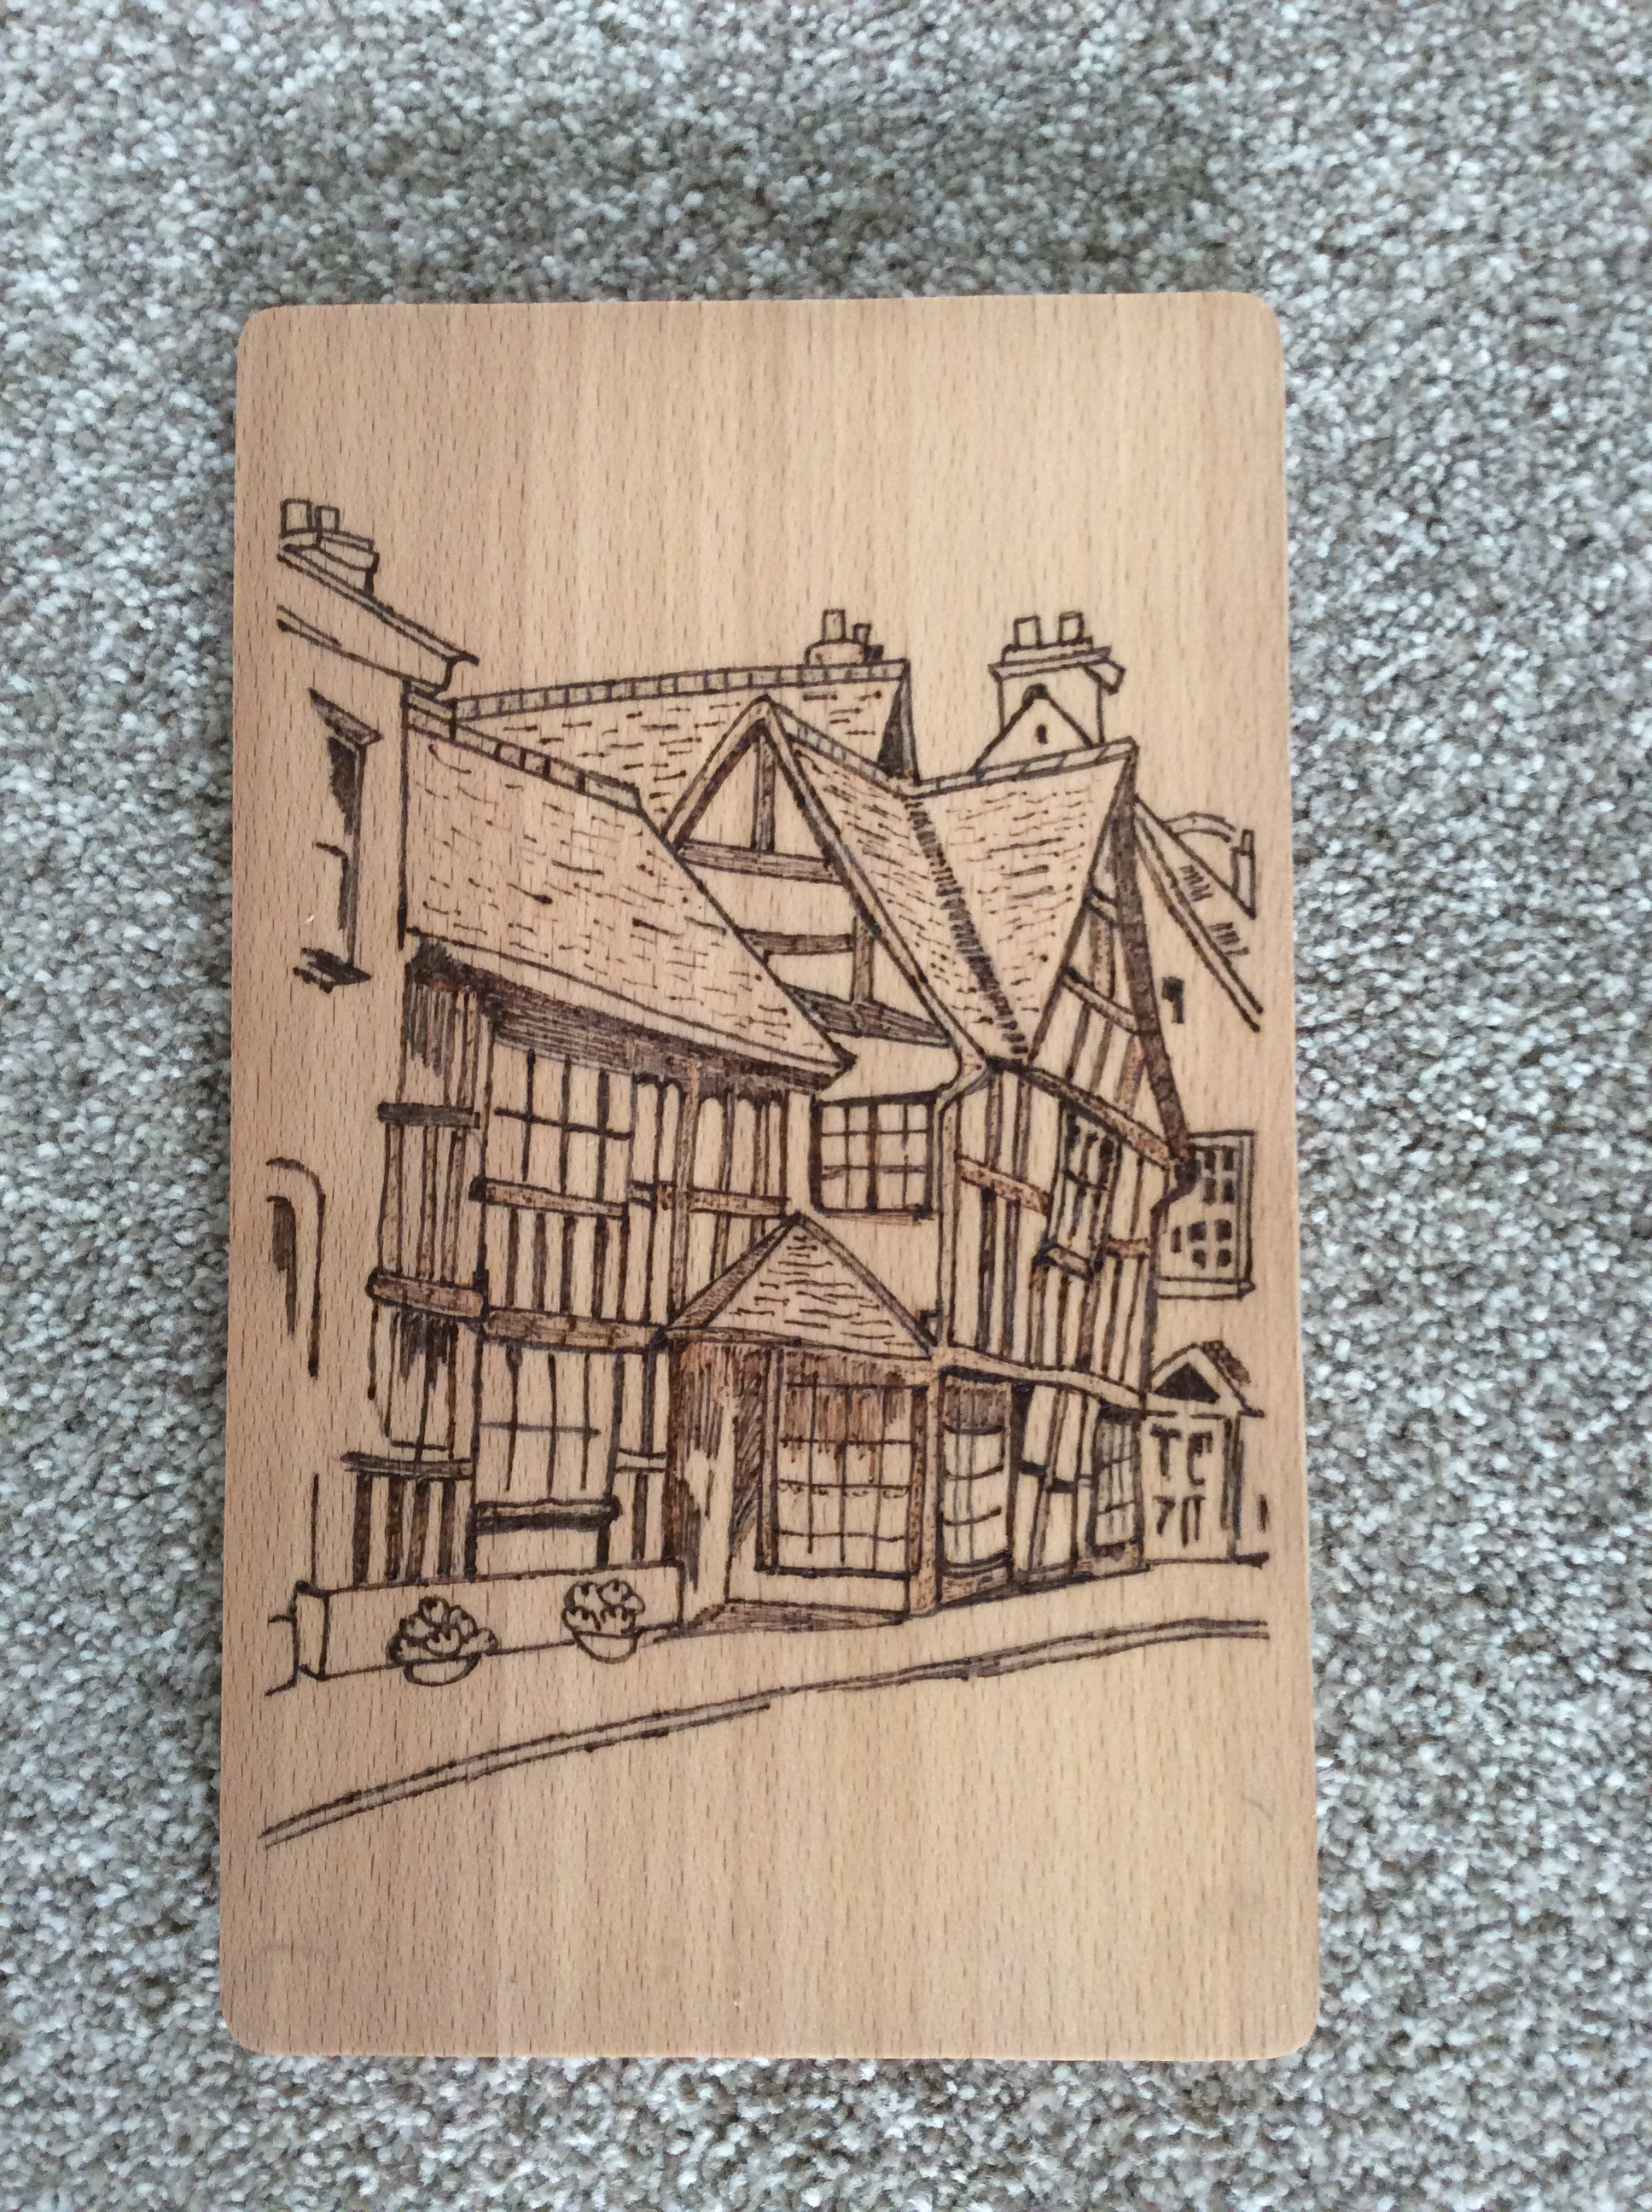 PYROGRAPHY WORKSHOP at THE TUDOR HOUSE MUSEUM, UPTON